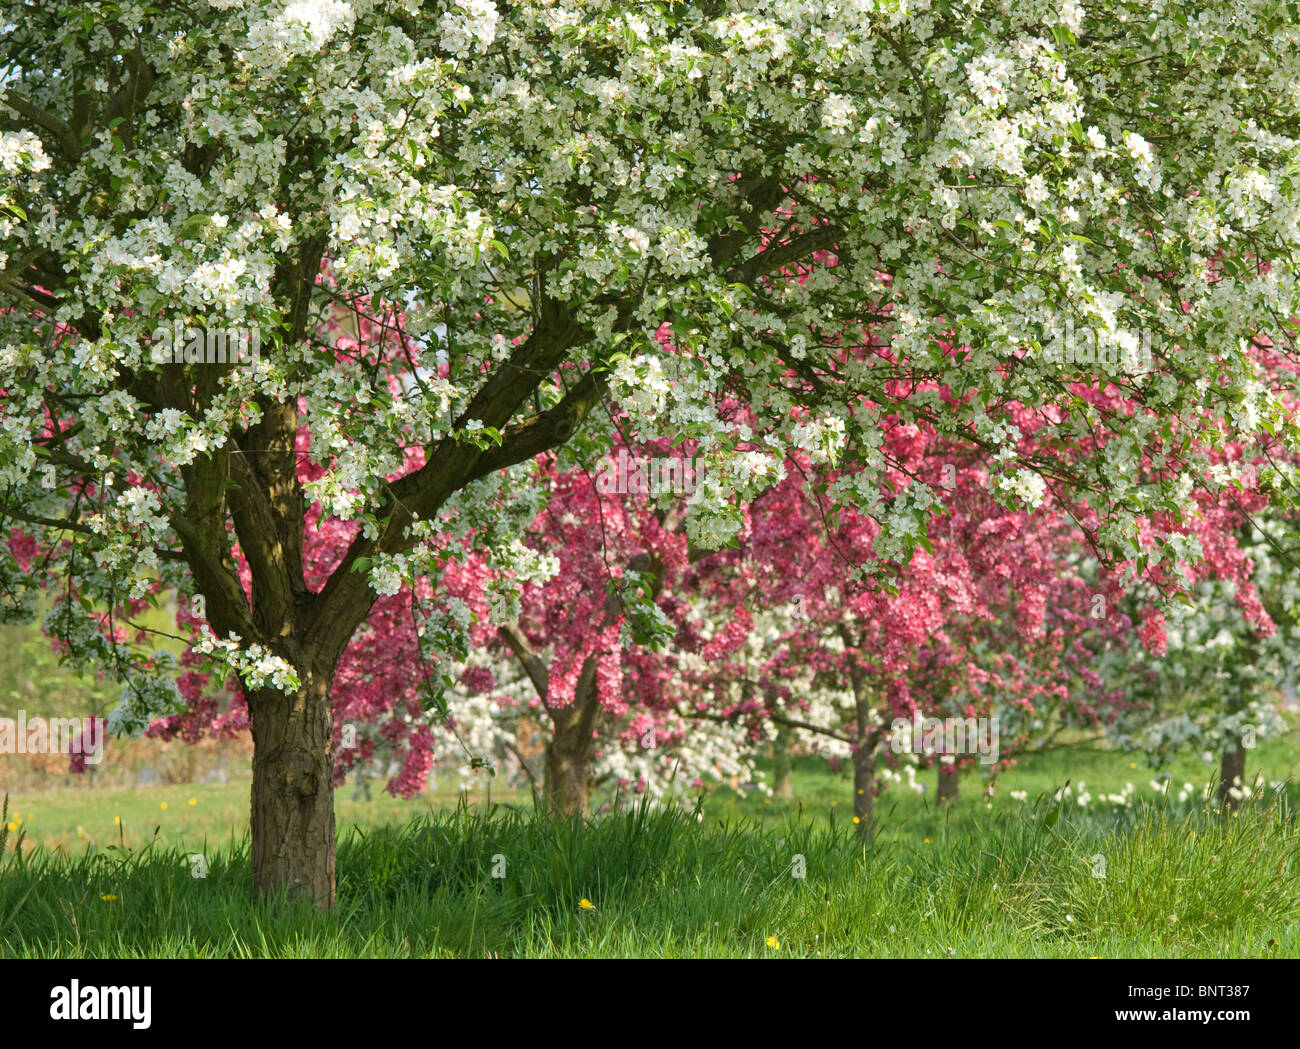 Flowering fruit trees at rhs garden at wisley england for Garden trees england